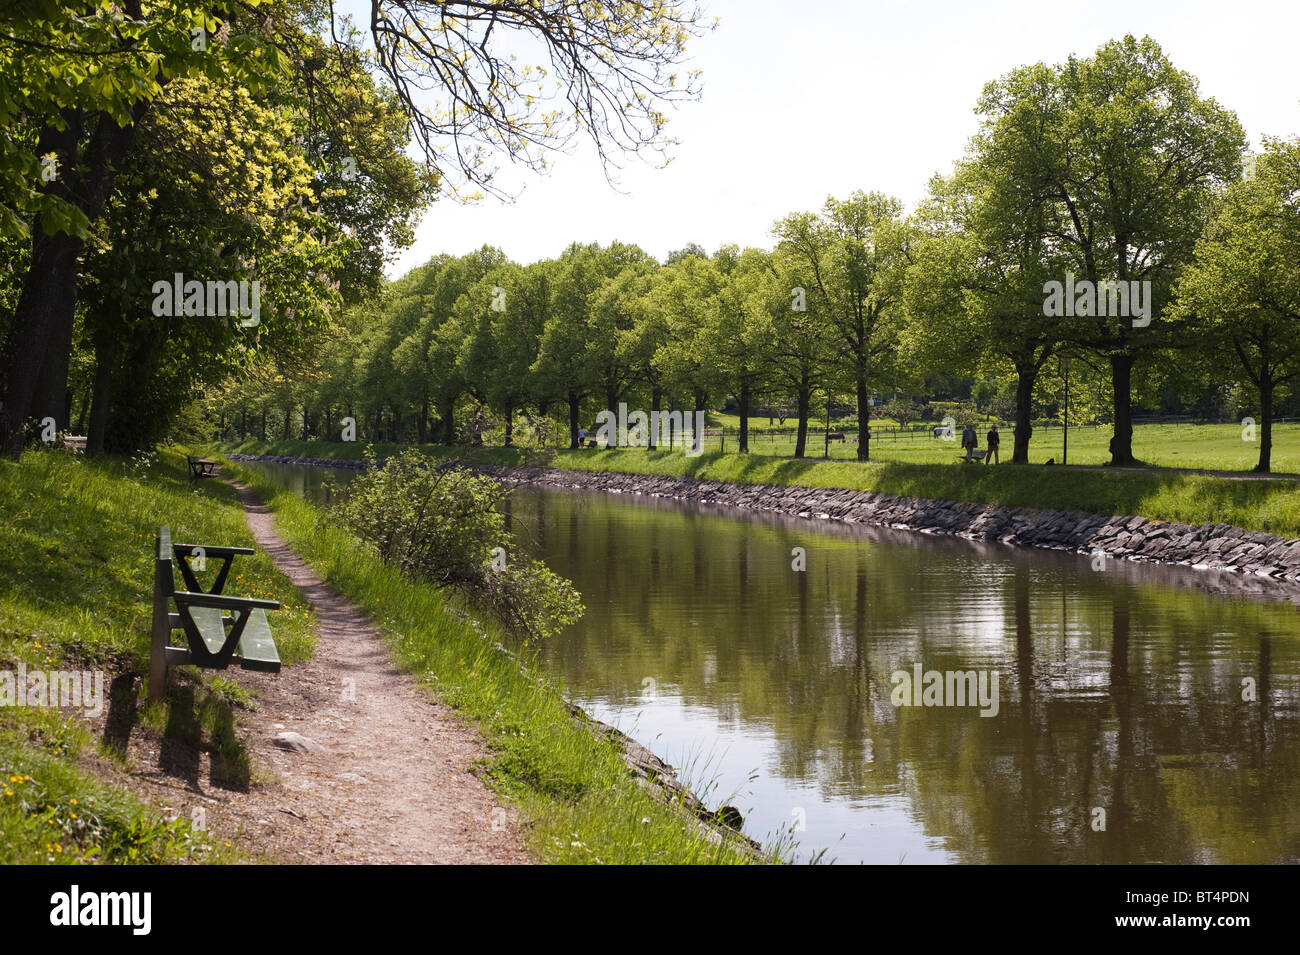 Canal through Djurgården in Stockholm - Stock Image